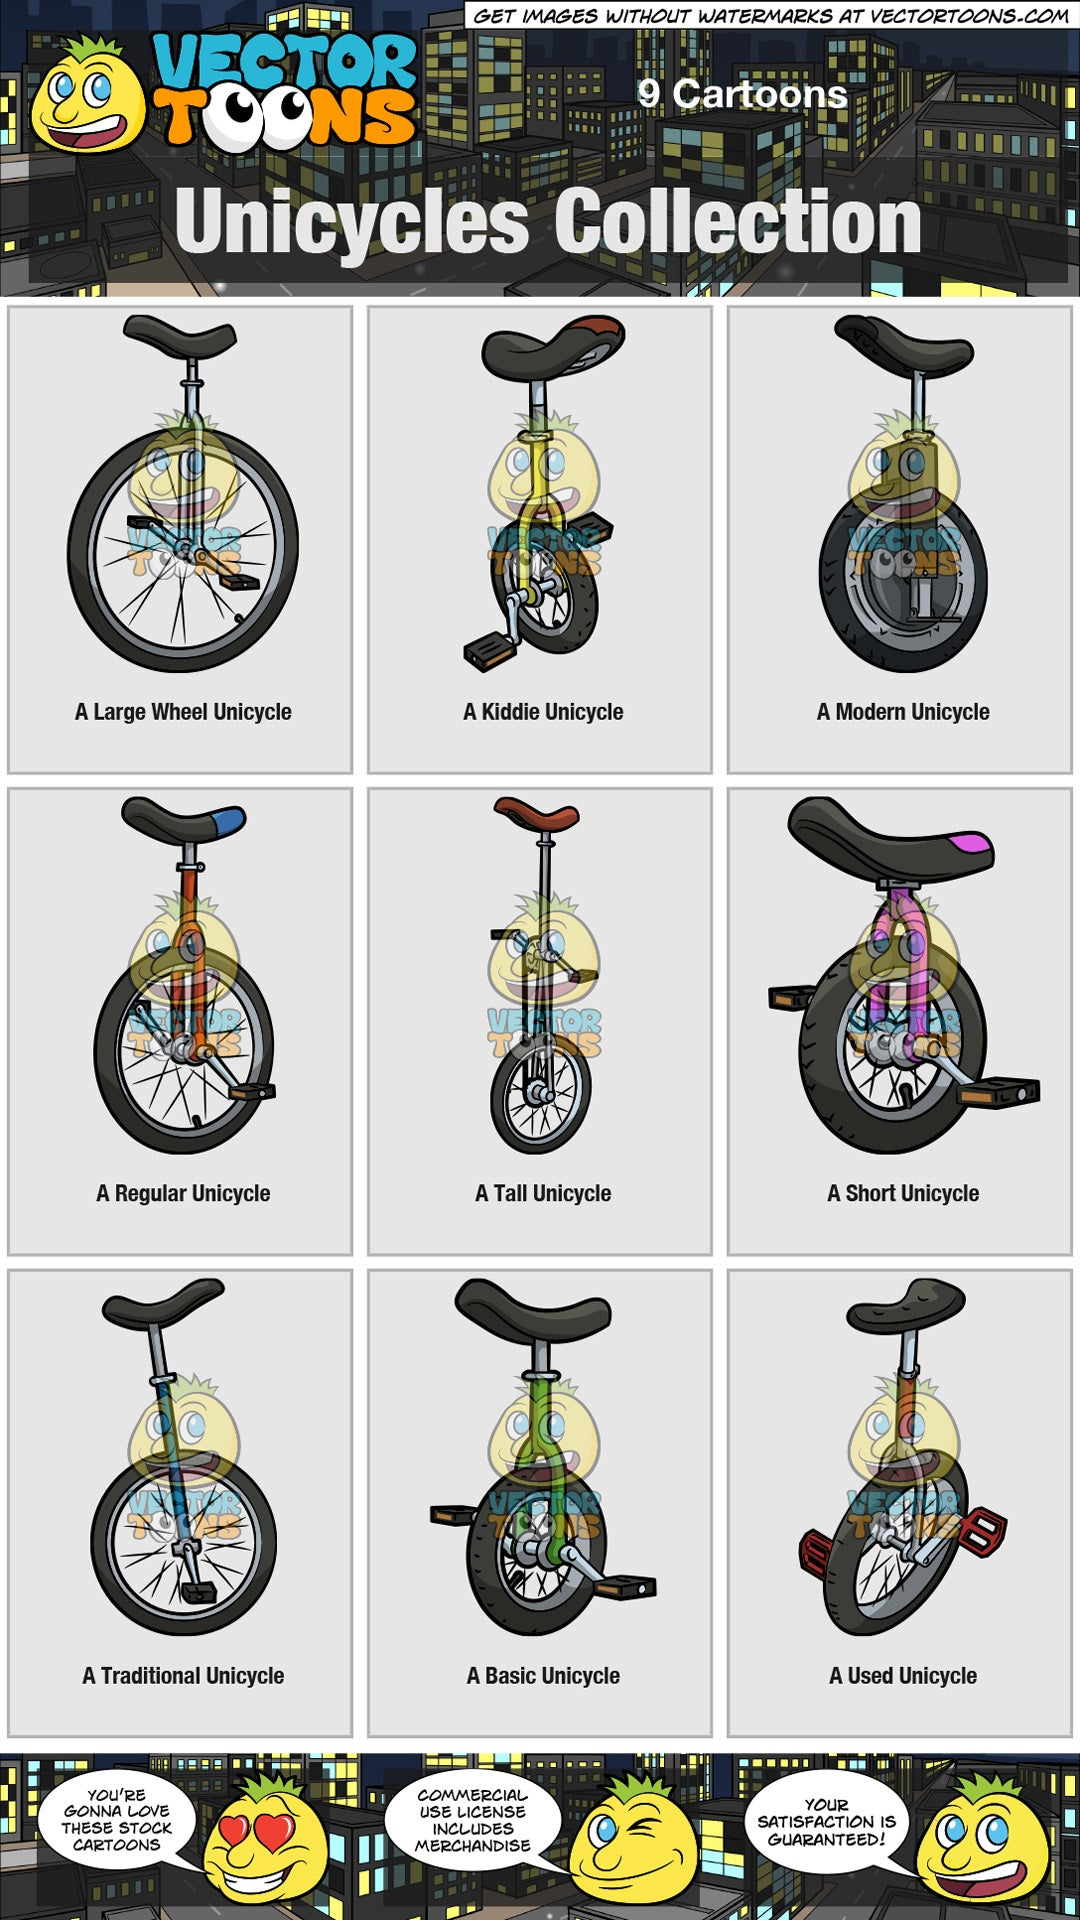 Unicycles Collection